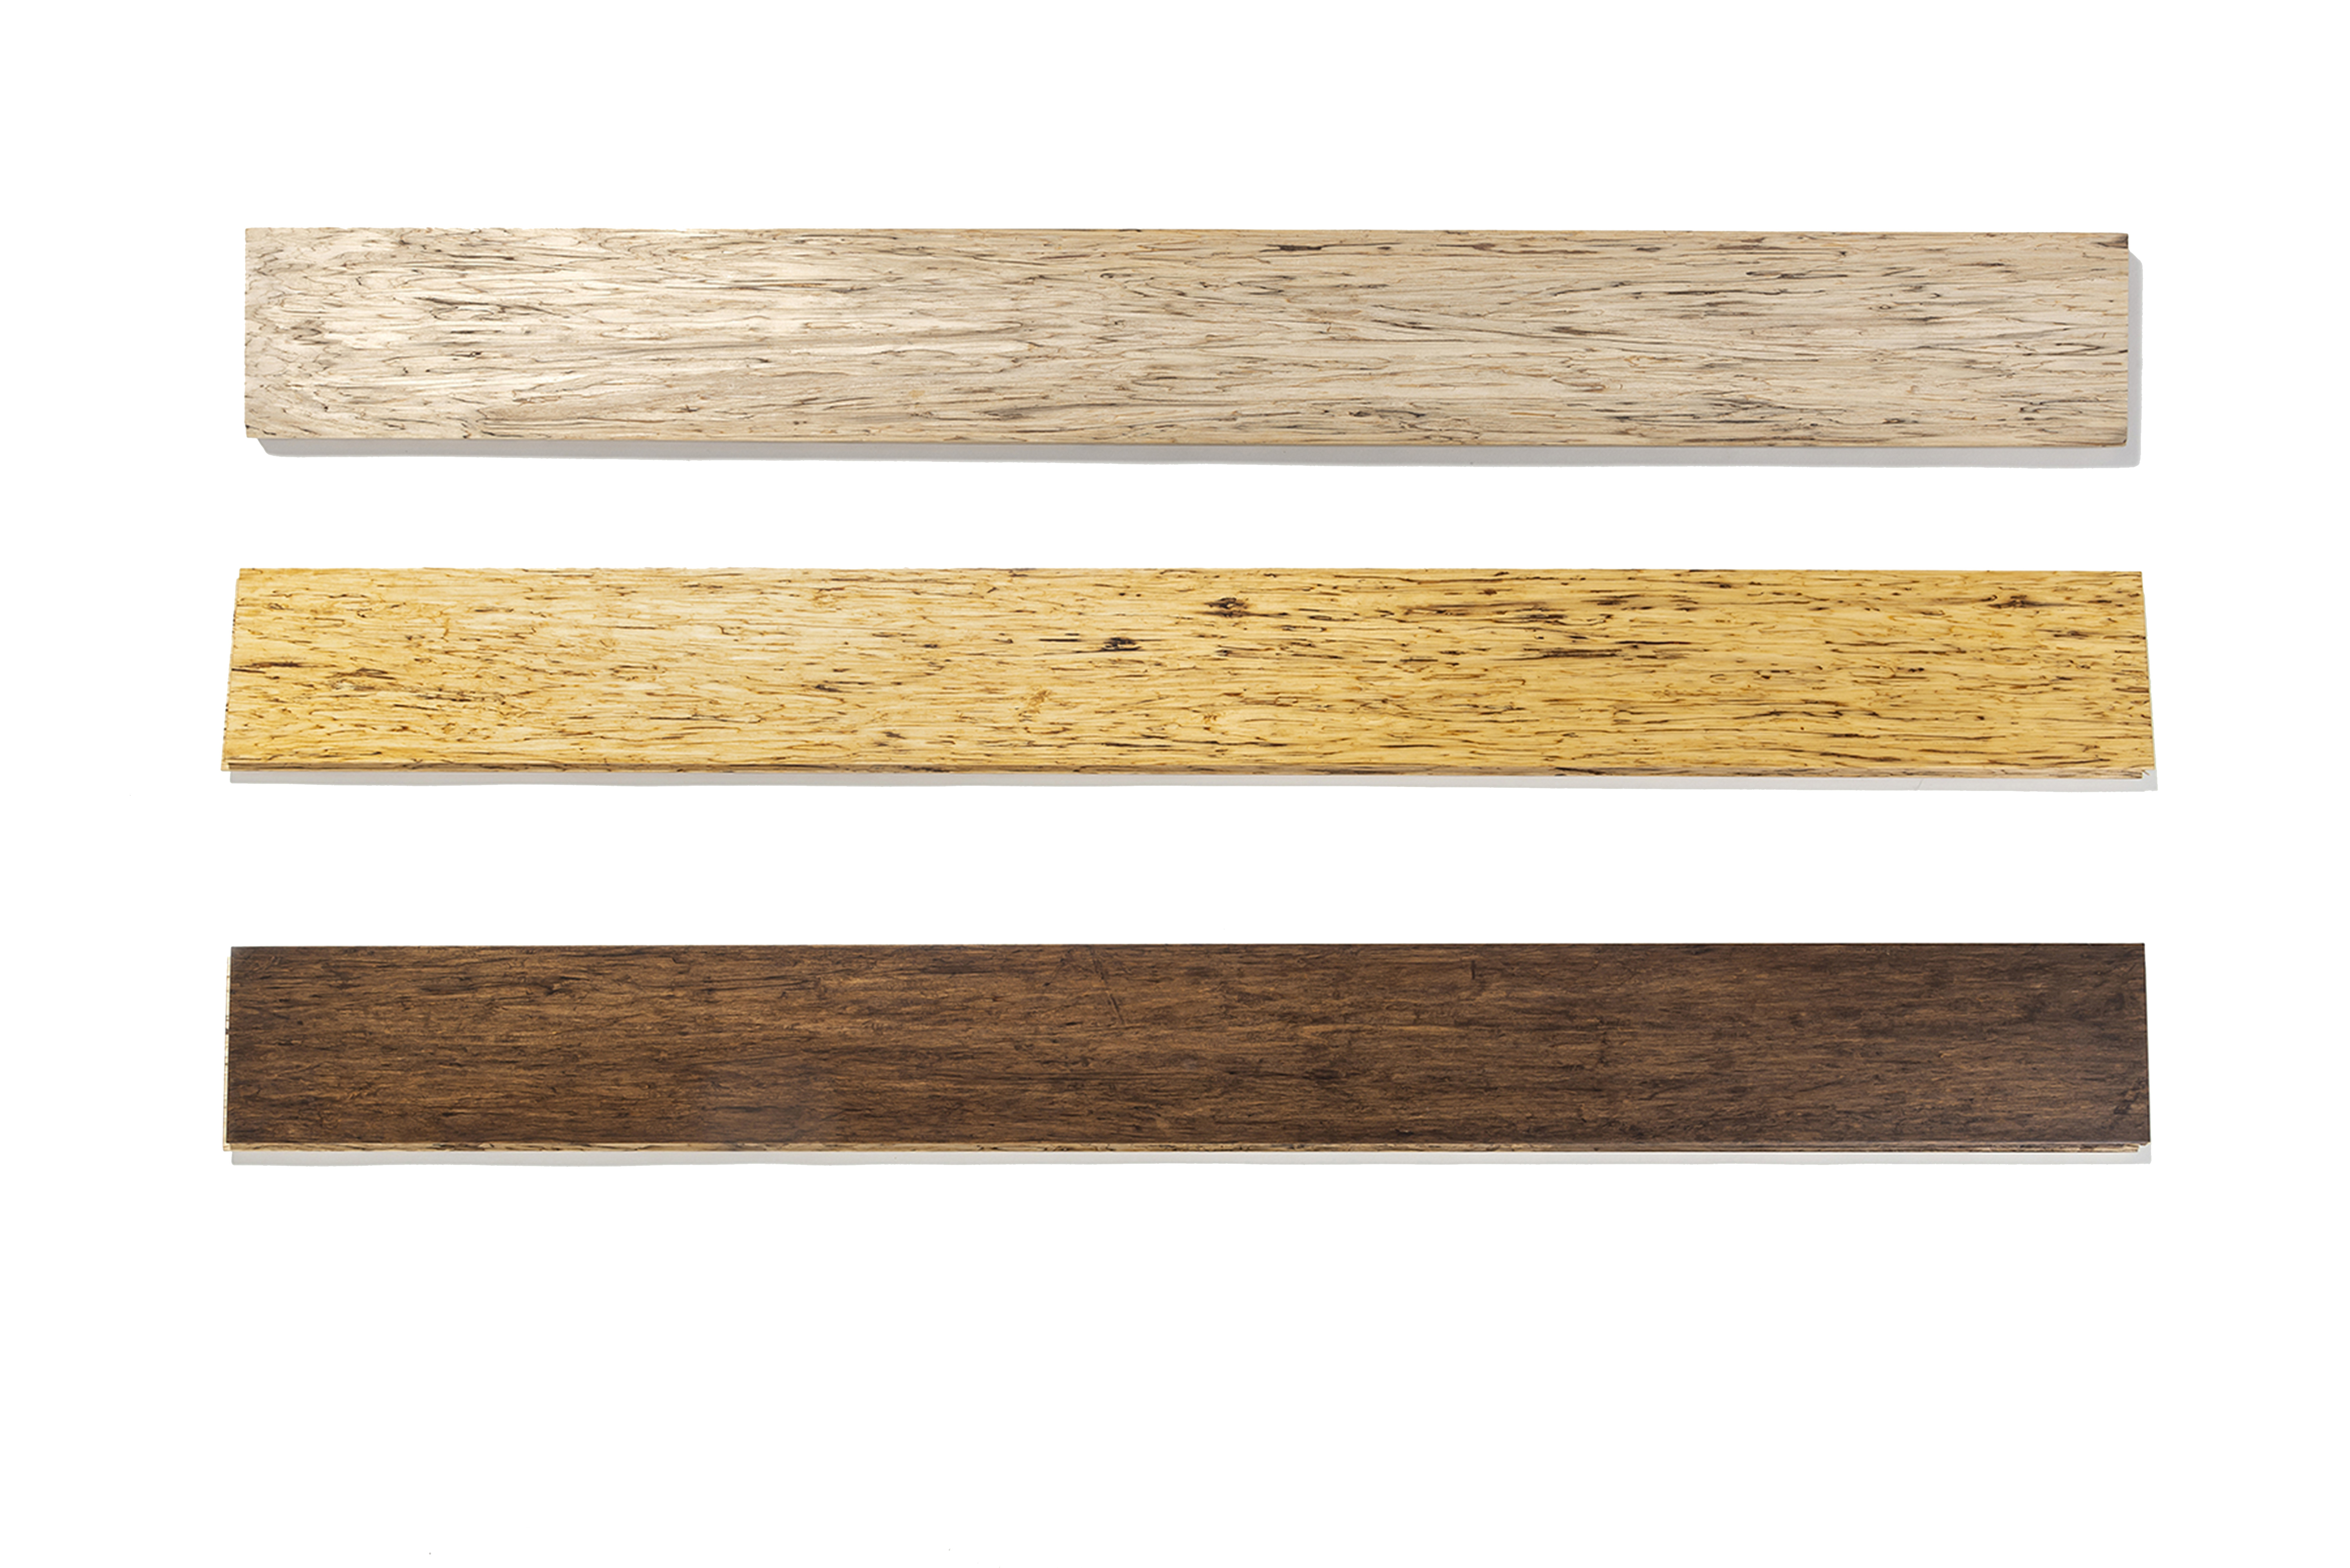 stained and unstained flooring samples